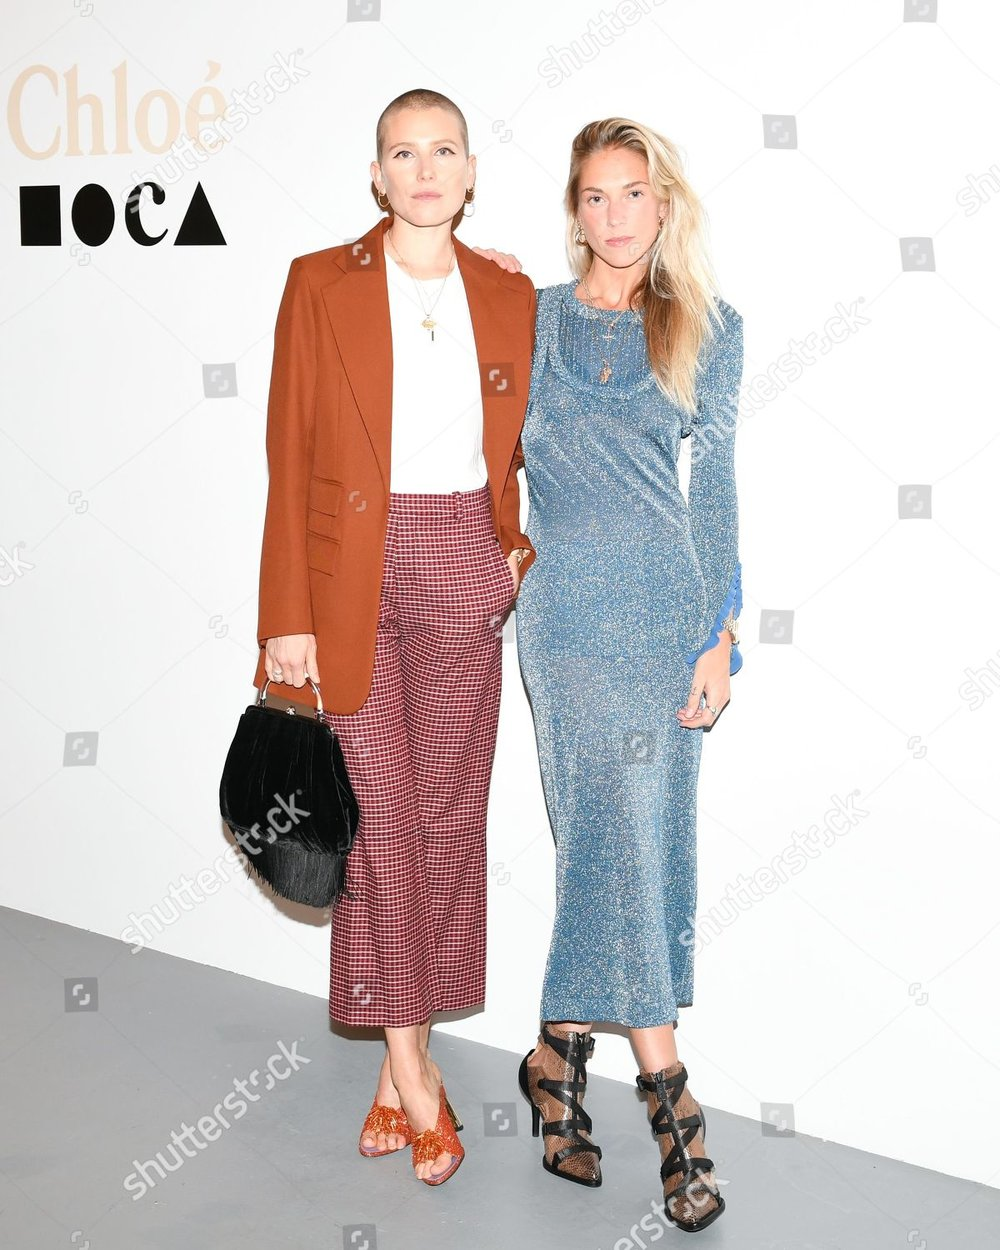 chloe-and-museum-of-contemporary-art-fourth-annual-dinner-los-angeles-usa-shutterstock-editorial-9999699au.jpg